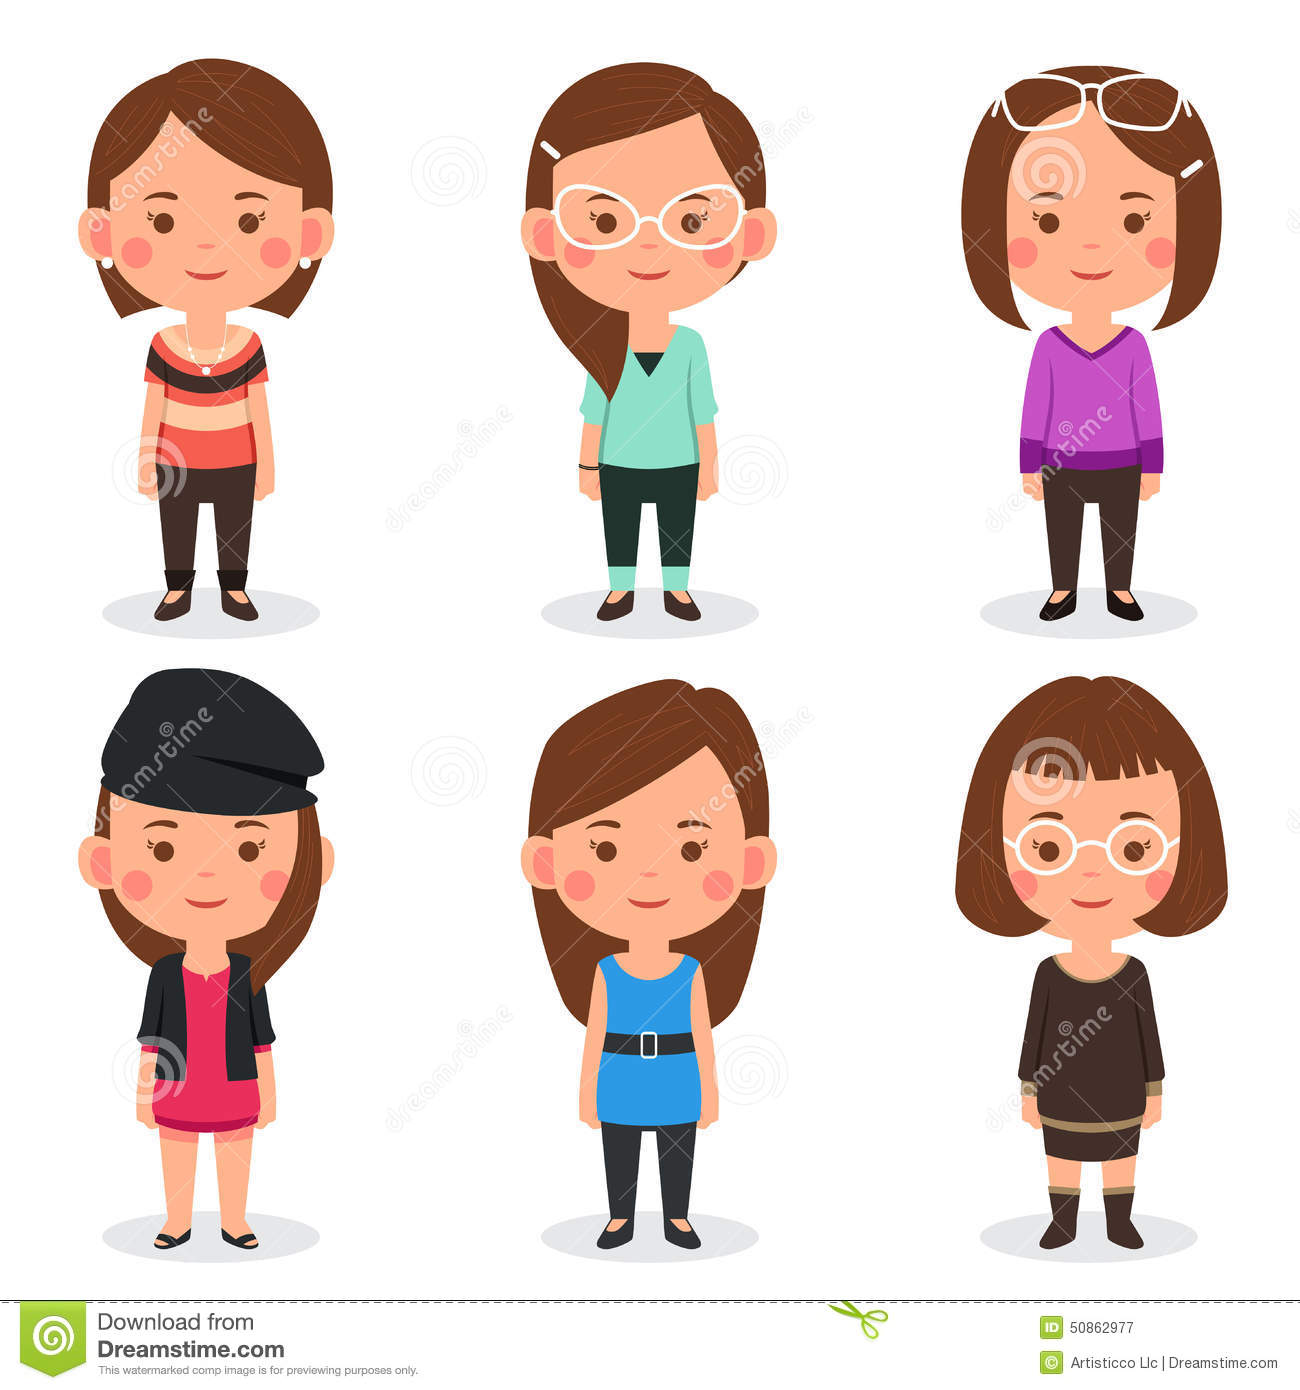 Women Avatars In Different Outfits Stock Vector ...